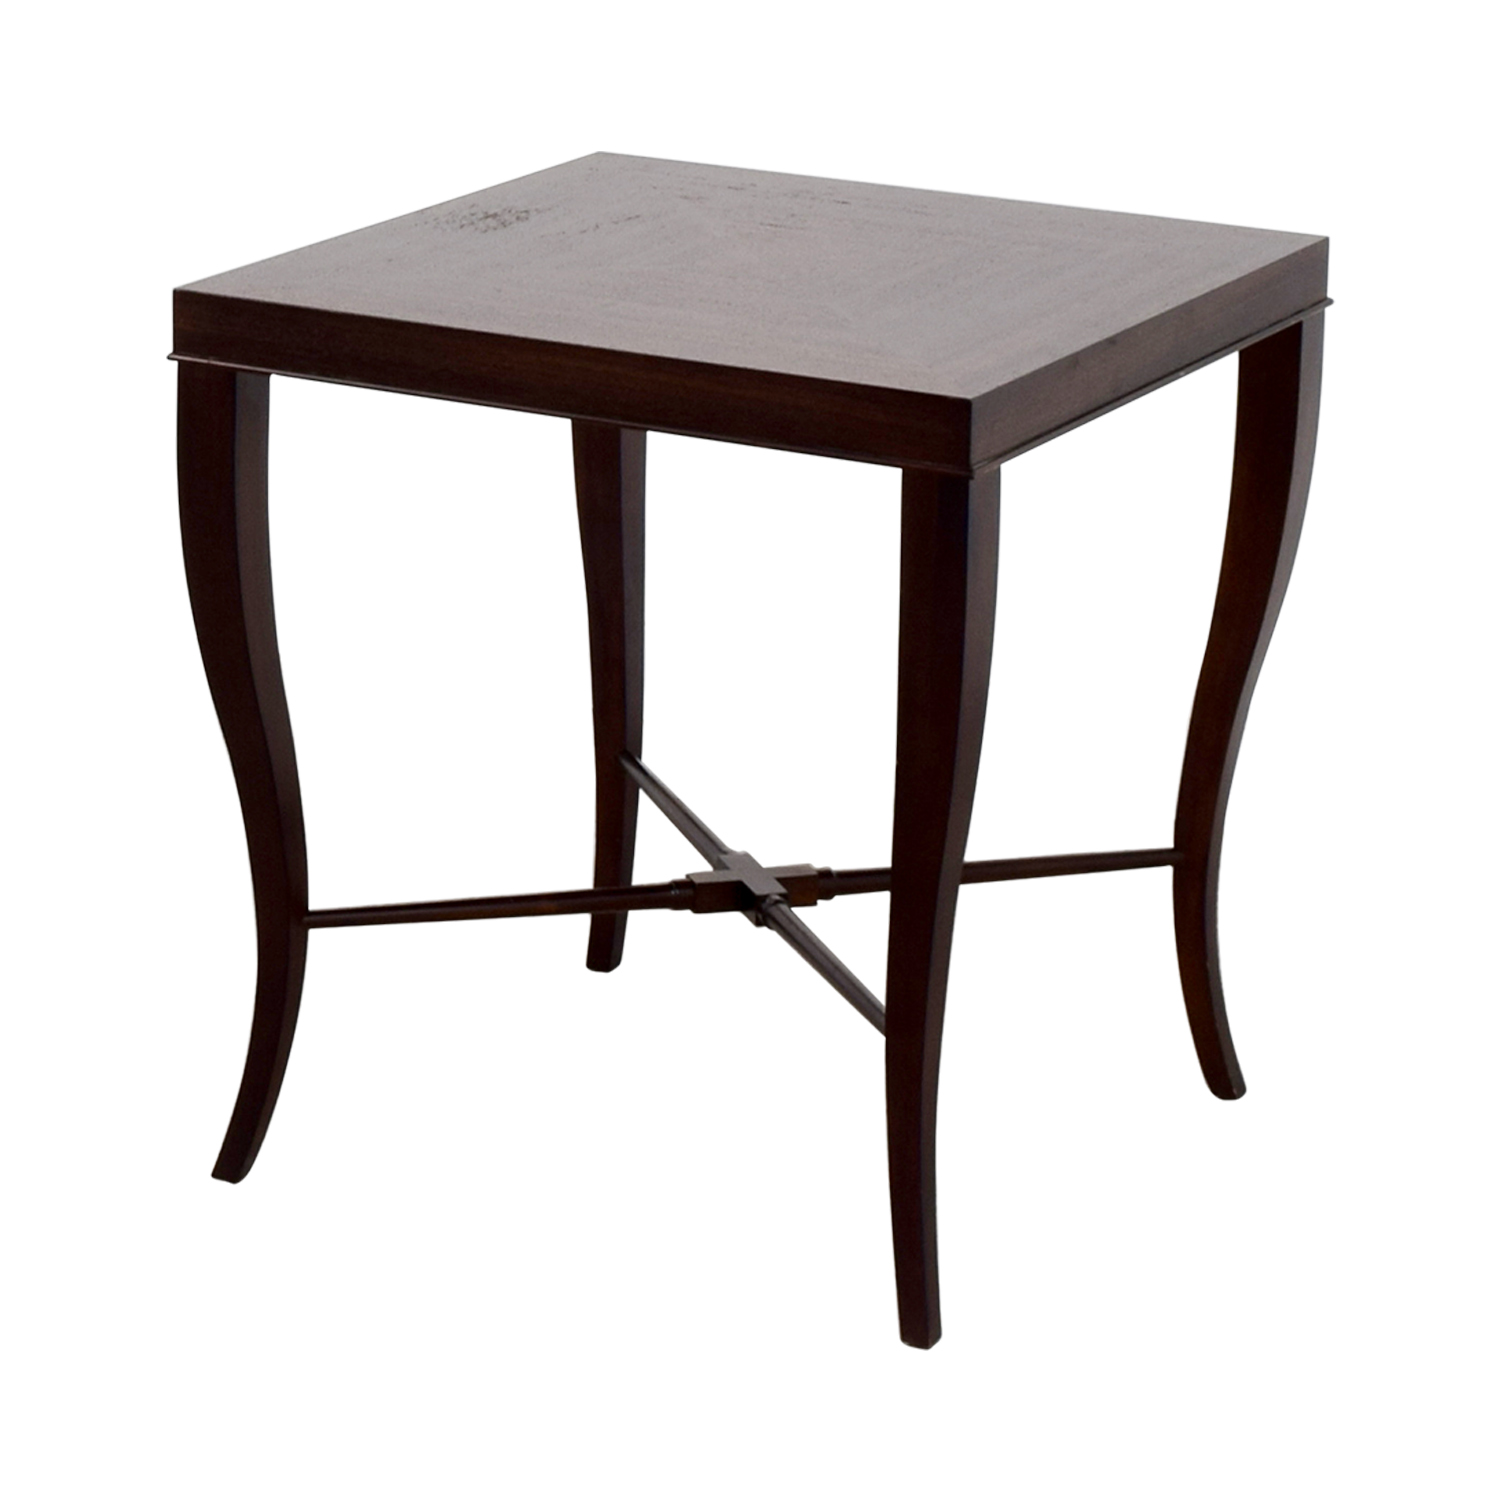 Ethan Allen Ethan Allen Wood Side Table for sale